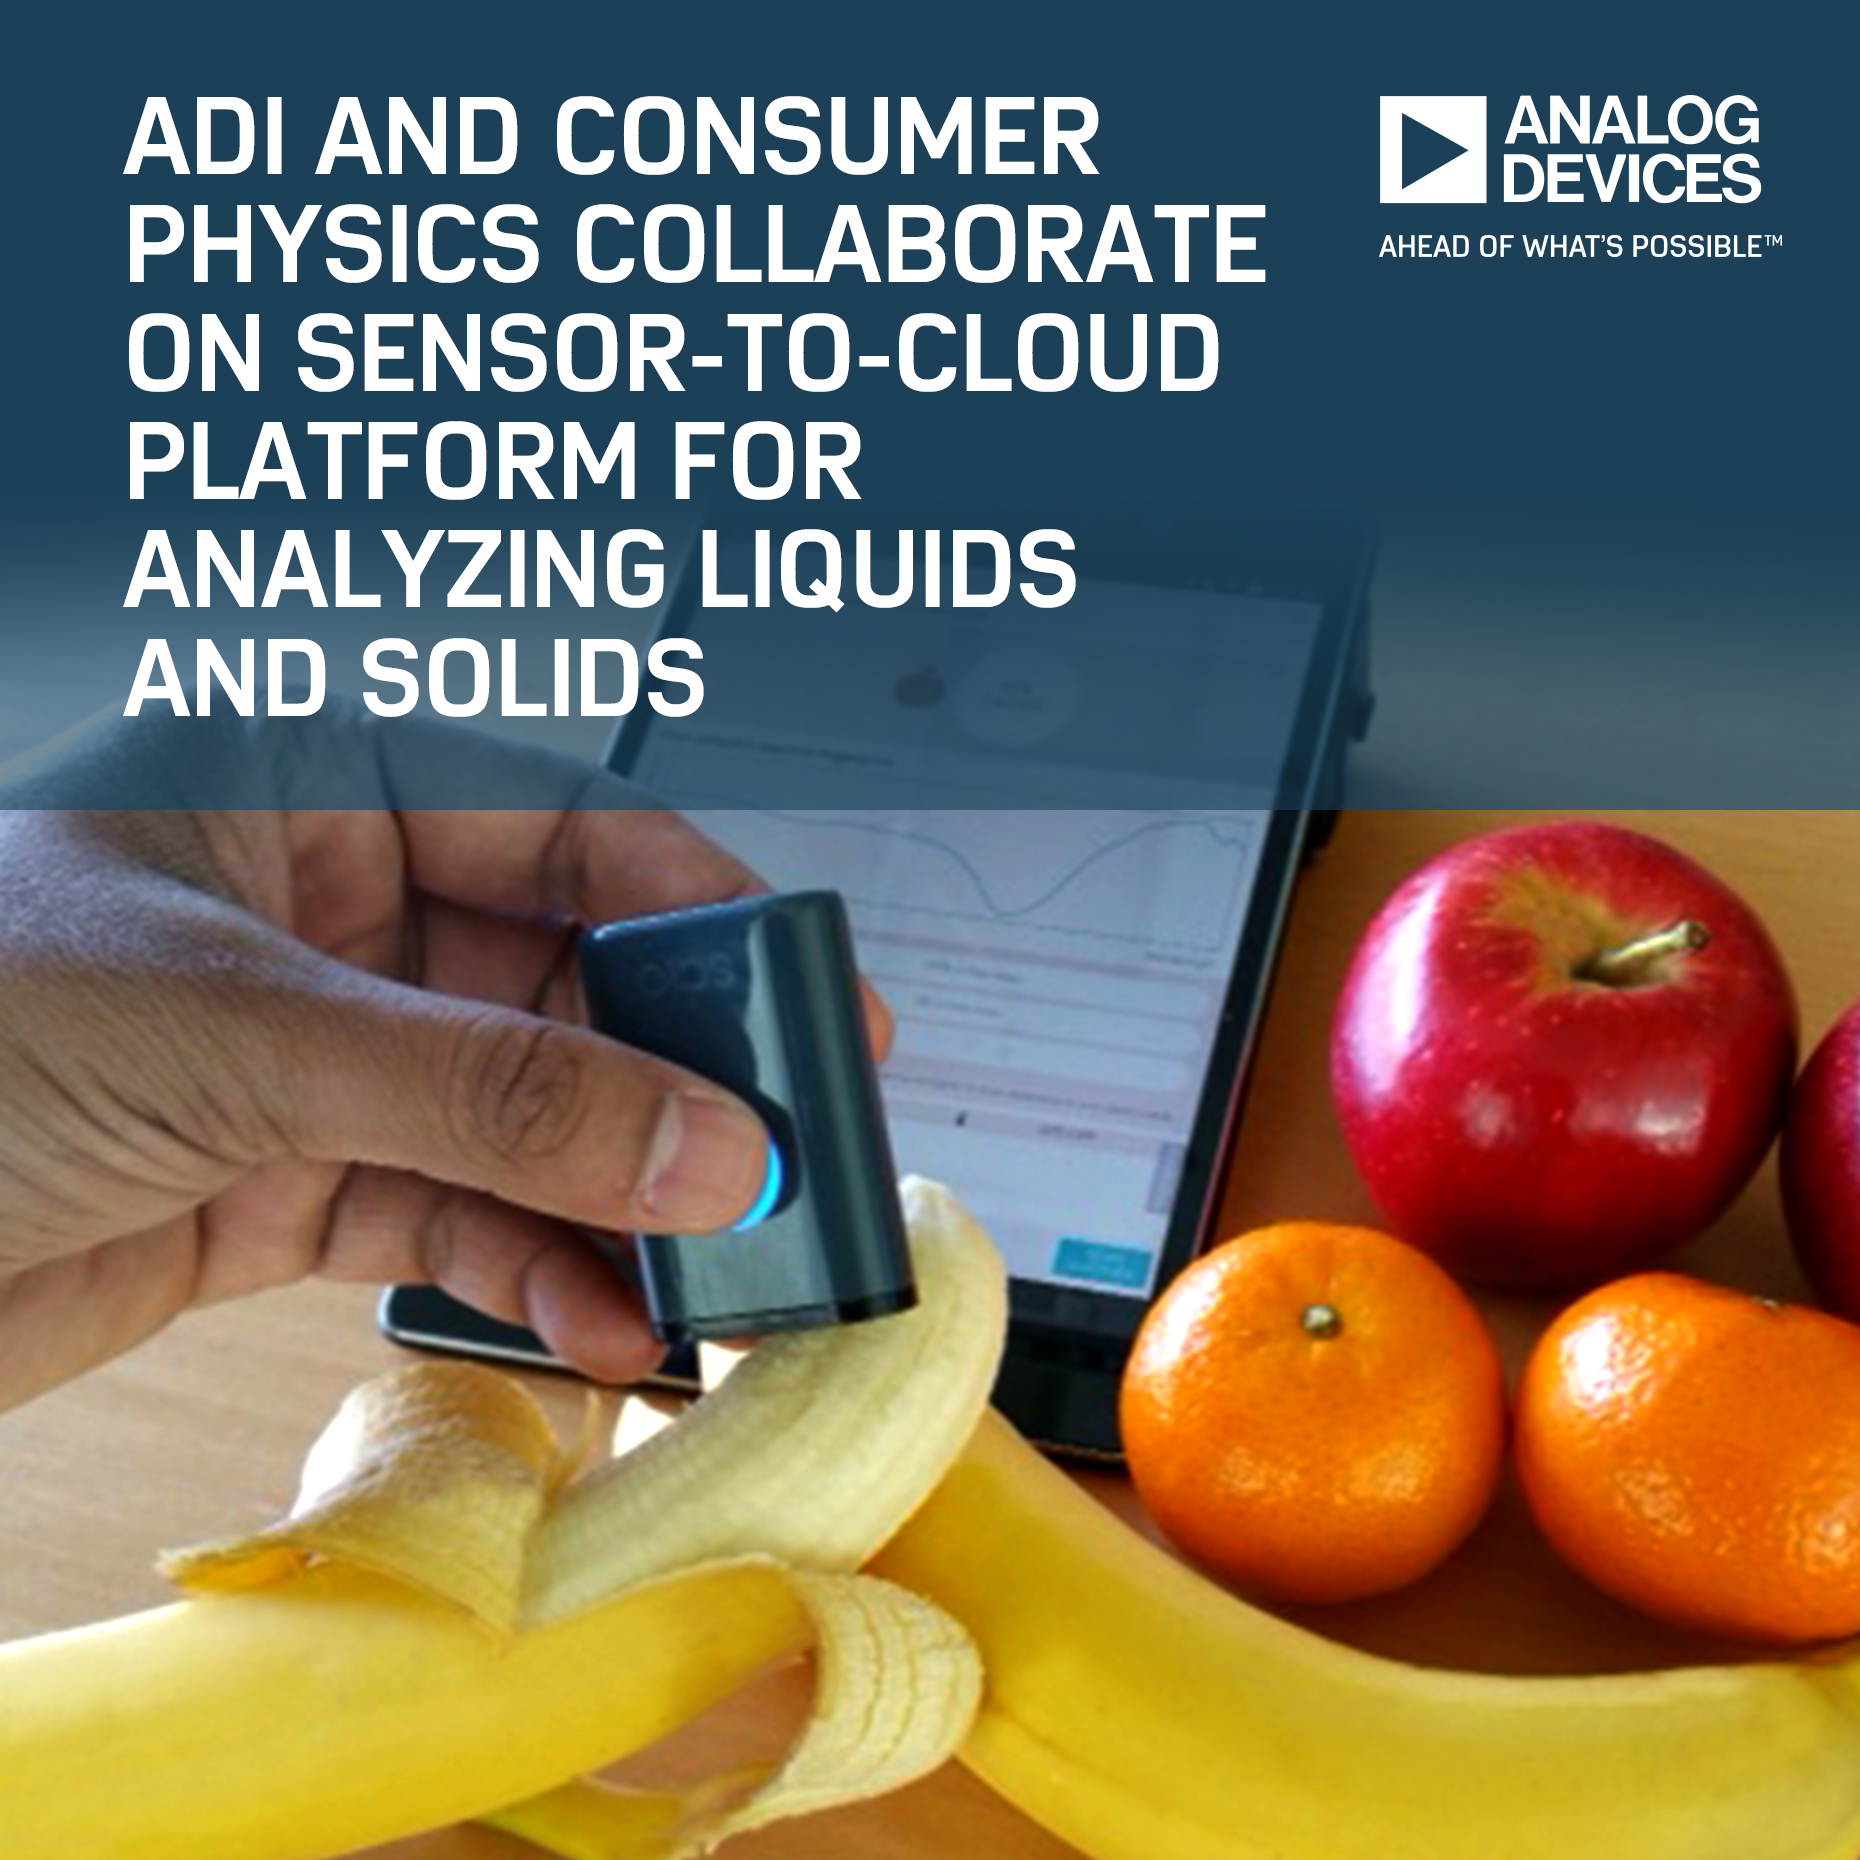 ADI and Consumer Physics IoT Platform Enables Material Analysis of Food, Drugs and More for Quality, Content and Composition